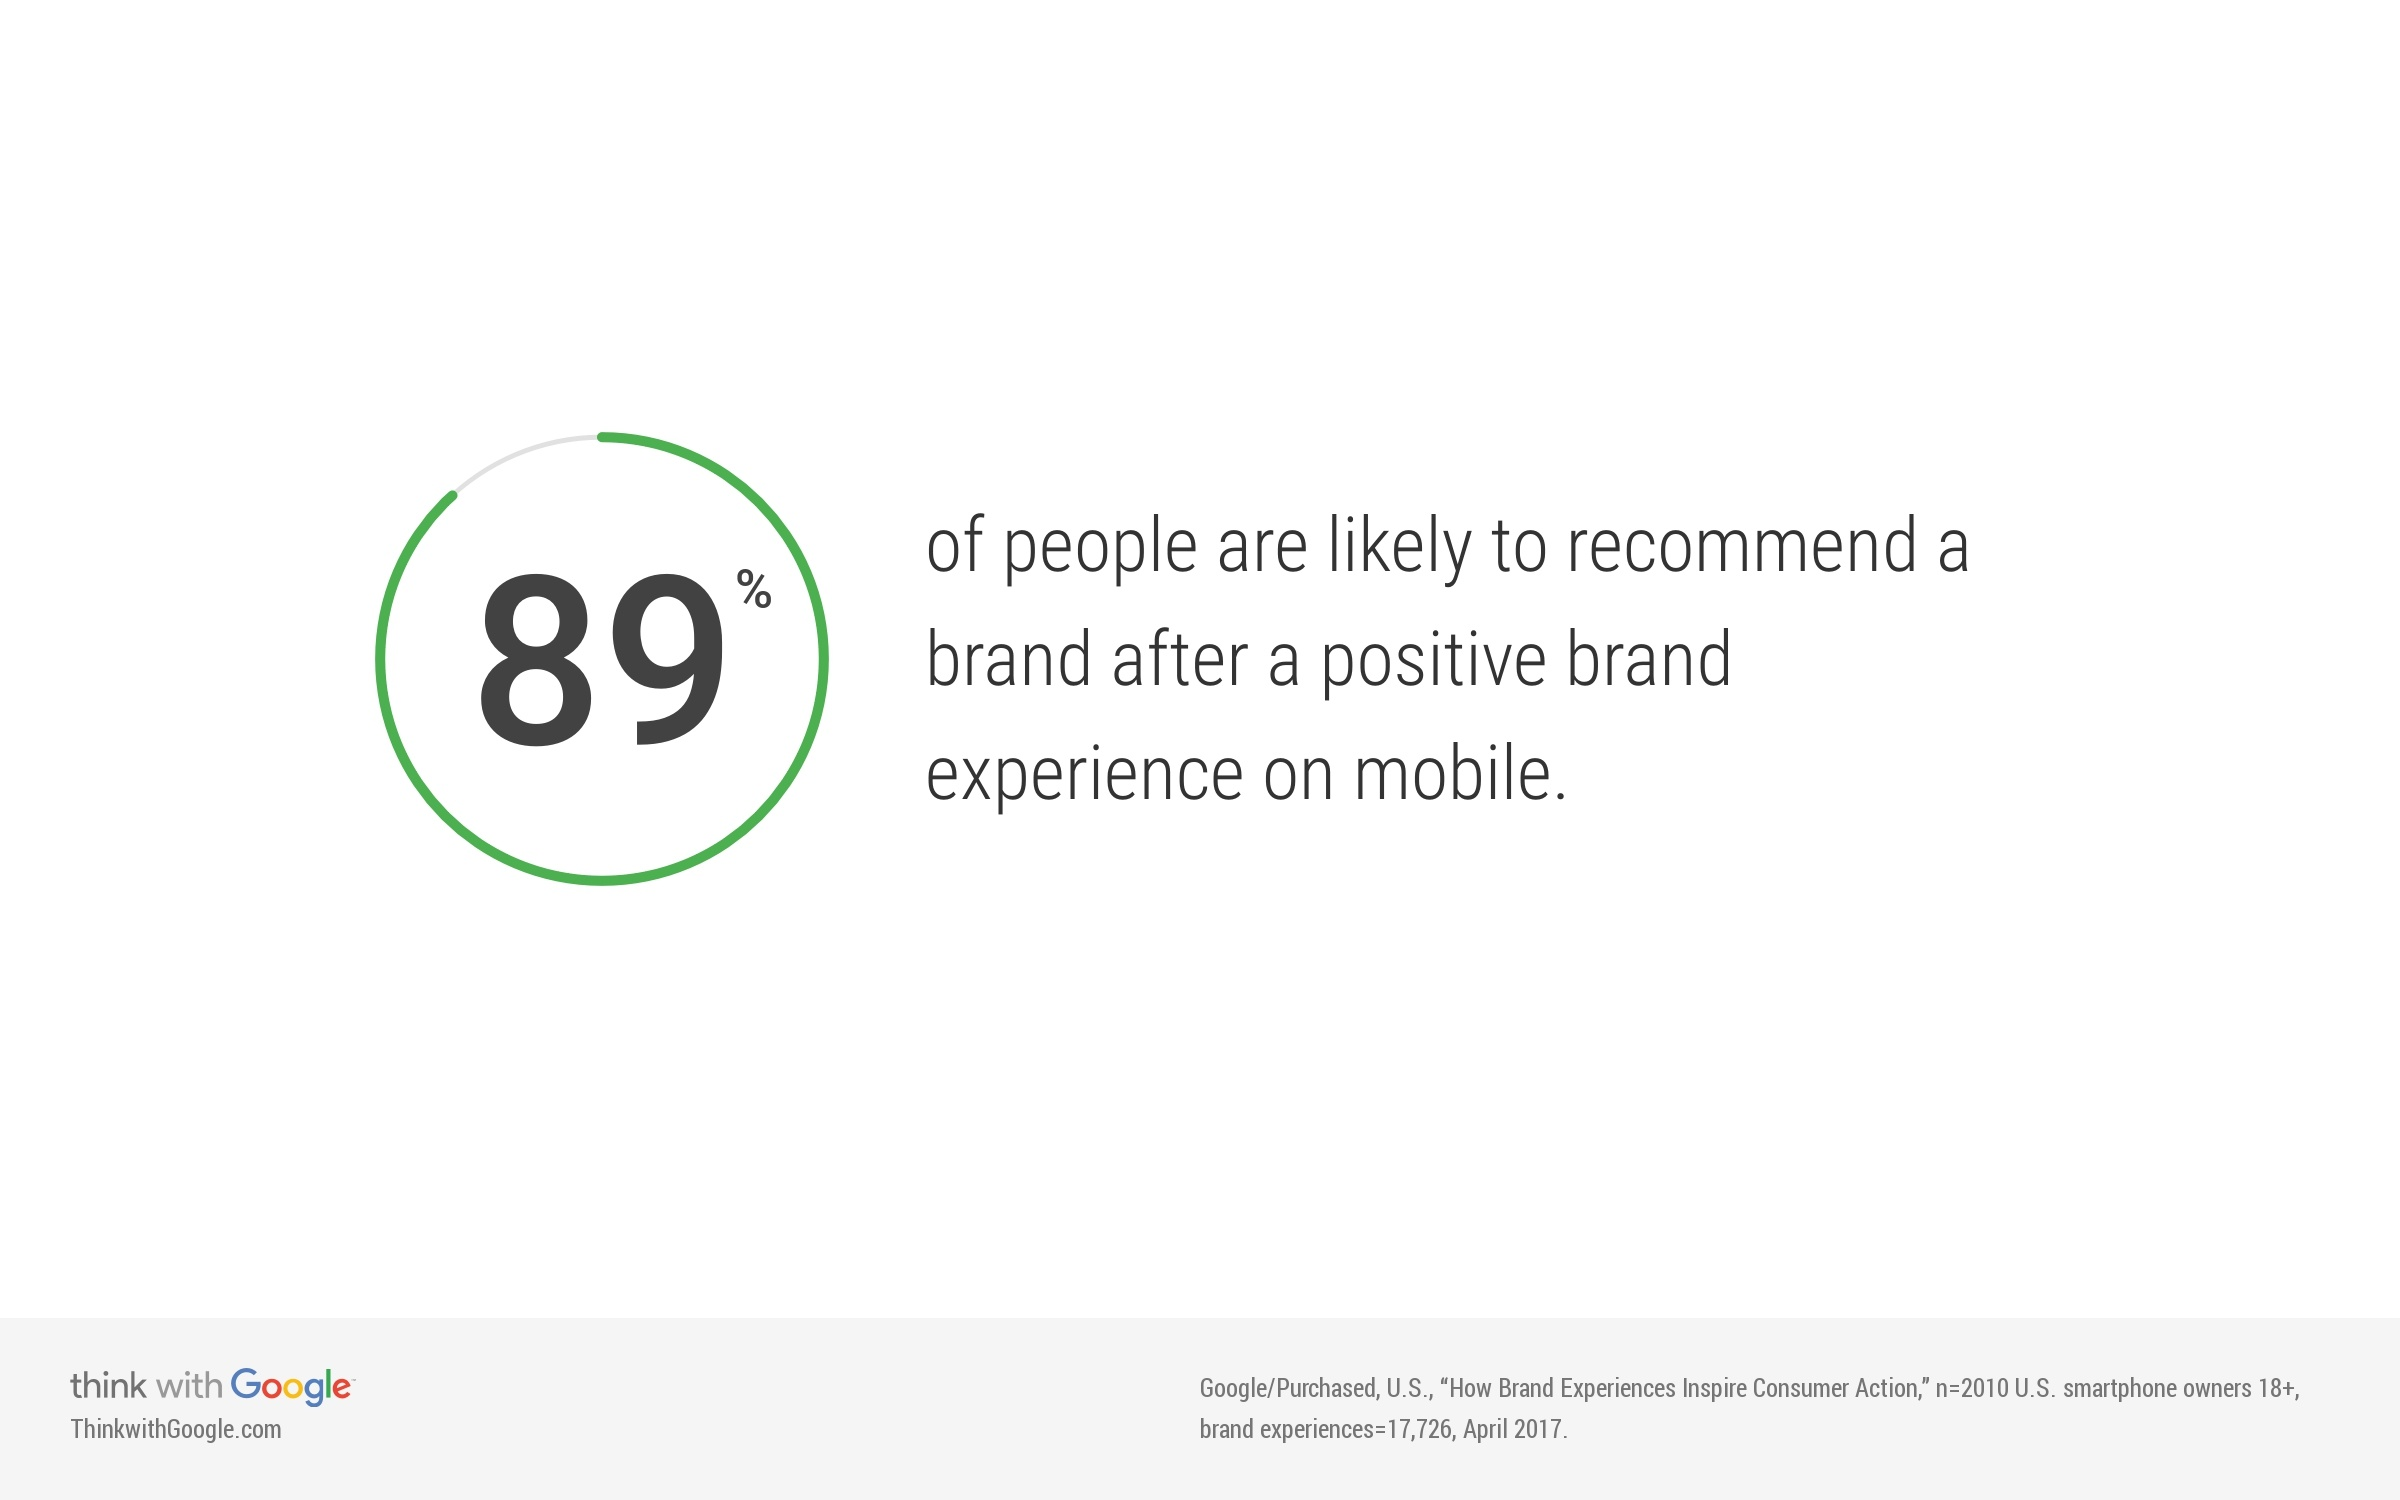 recommending-brands-after-positive-mobile-experience.jpg